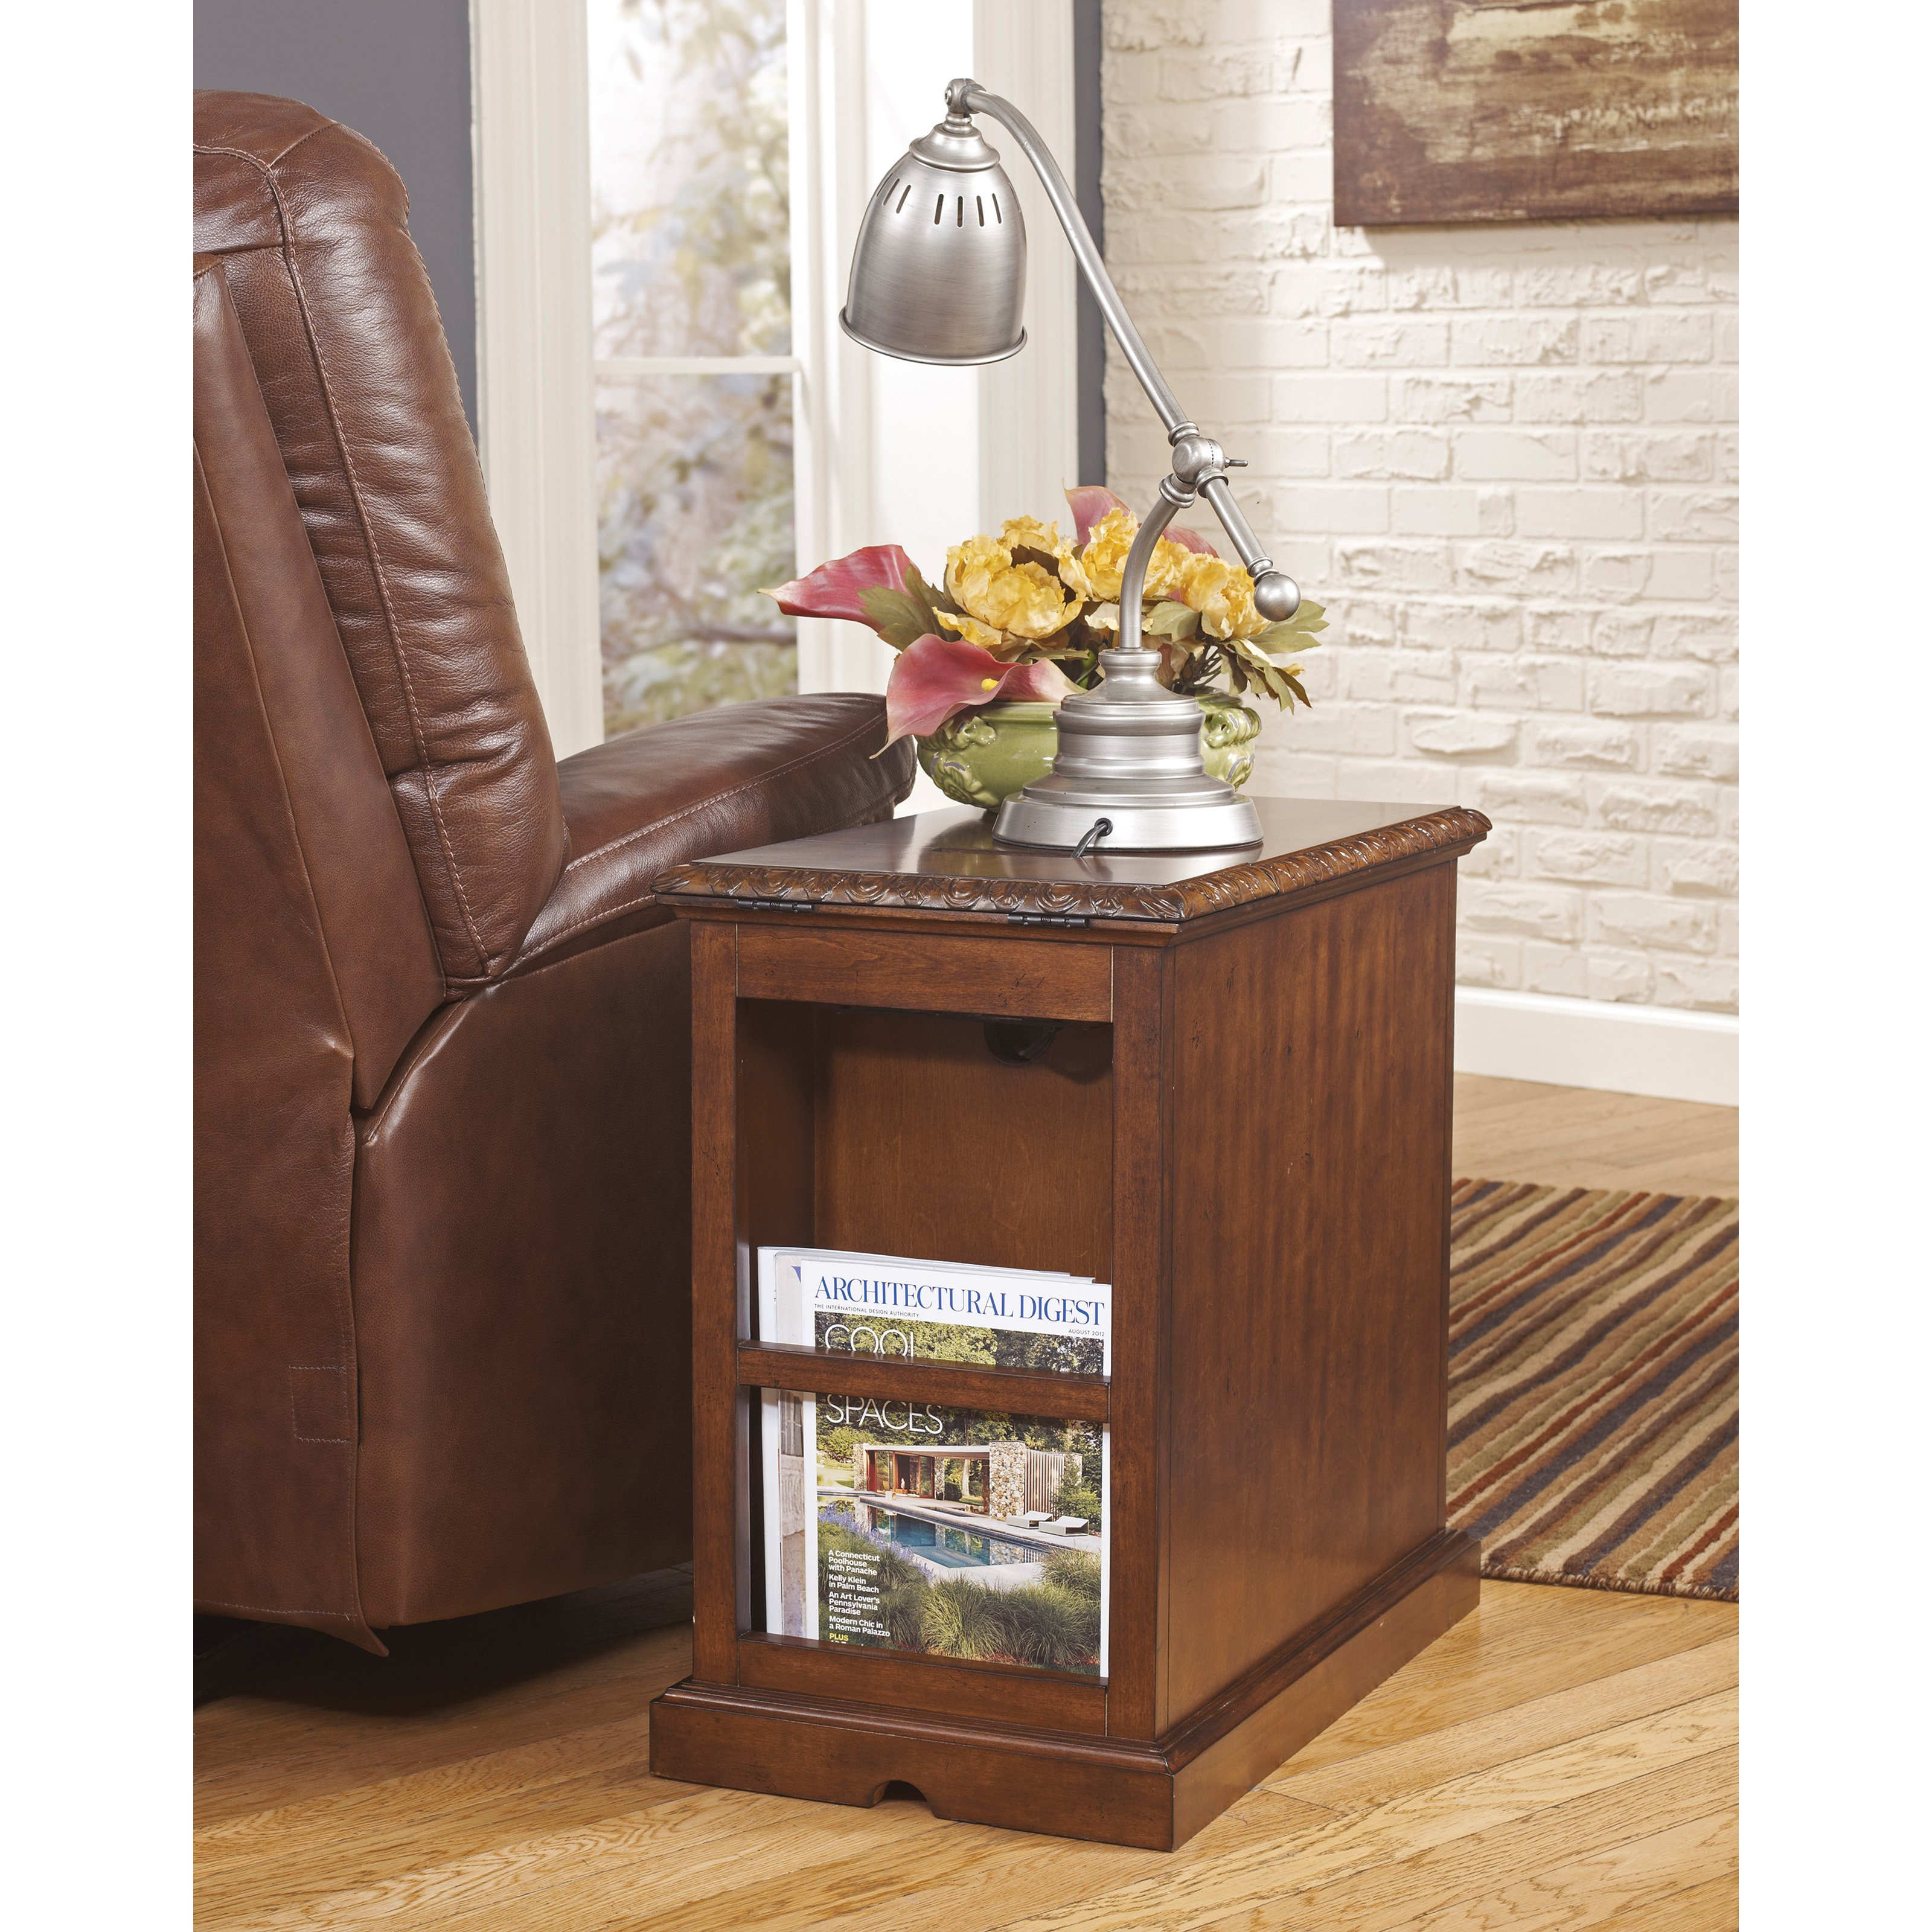 furniture complete your living room with new chairside end table tables storage basket drawers shelves skinny wedge accent baskets affordable dining sets hall console coffee and